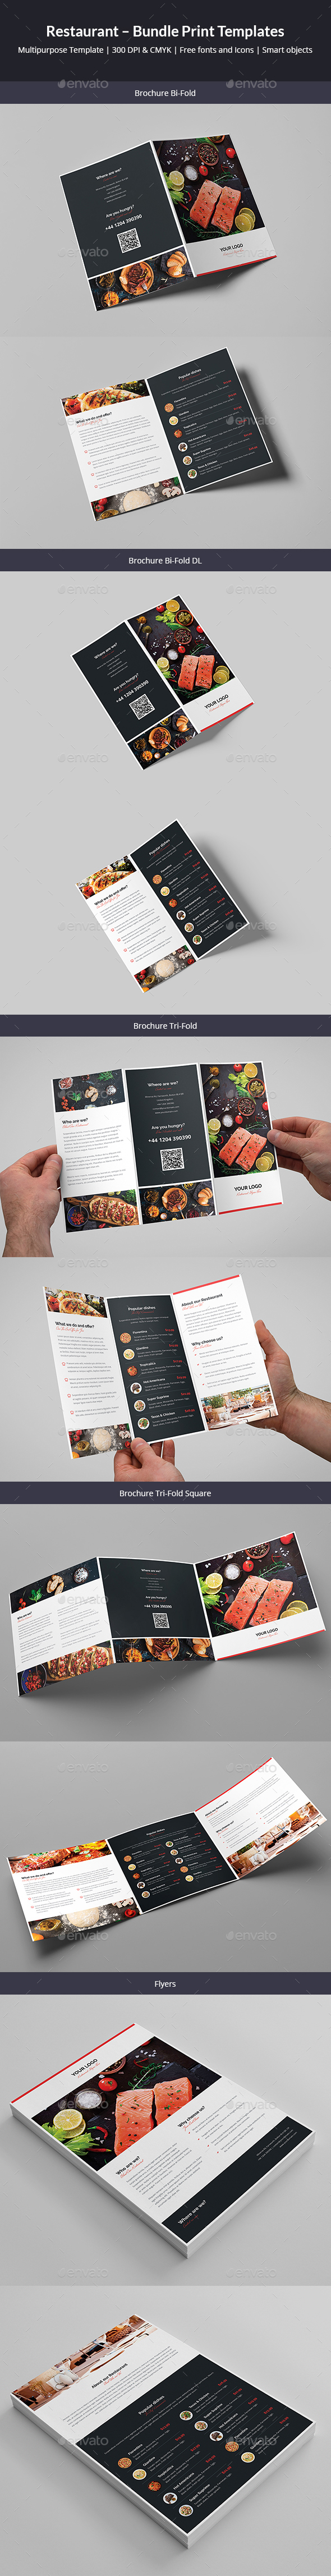 GraphicRiver Restaurant Bundle Print Templates 5 in 1 21095552